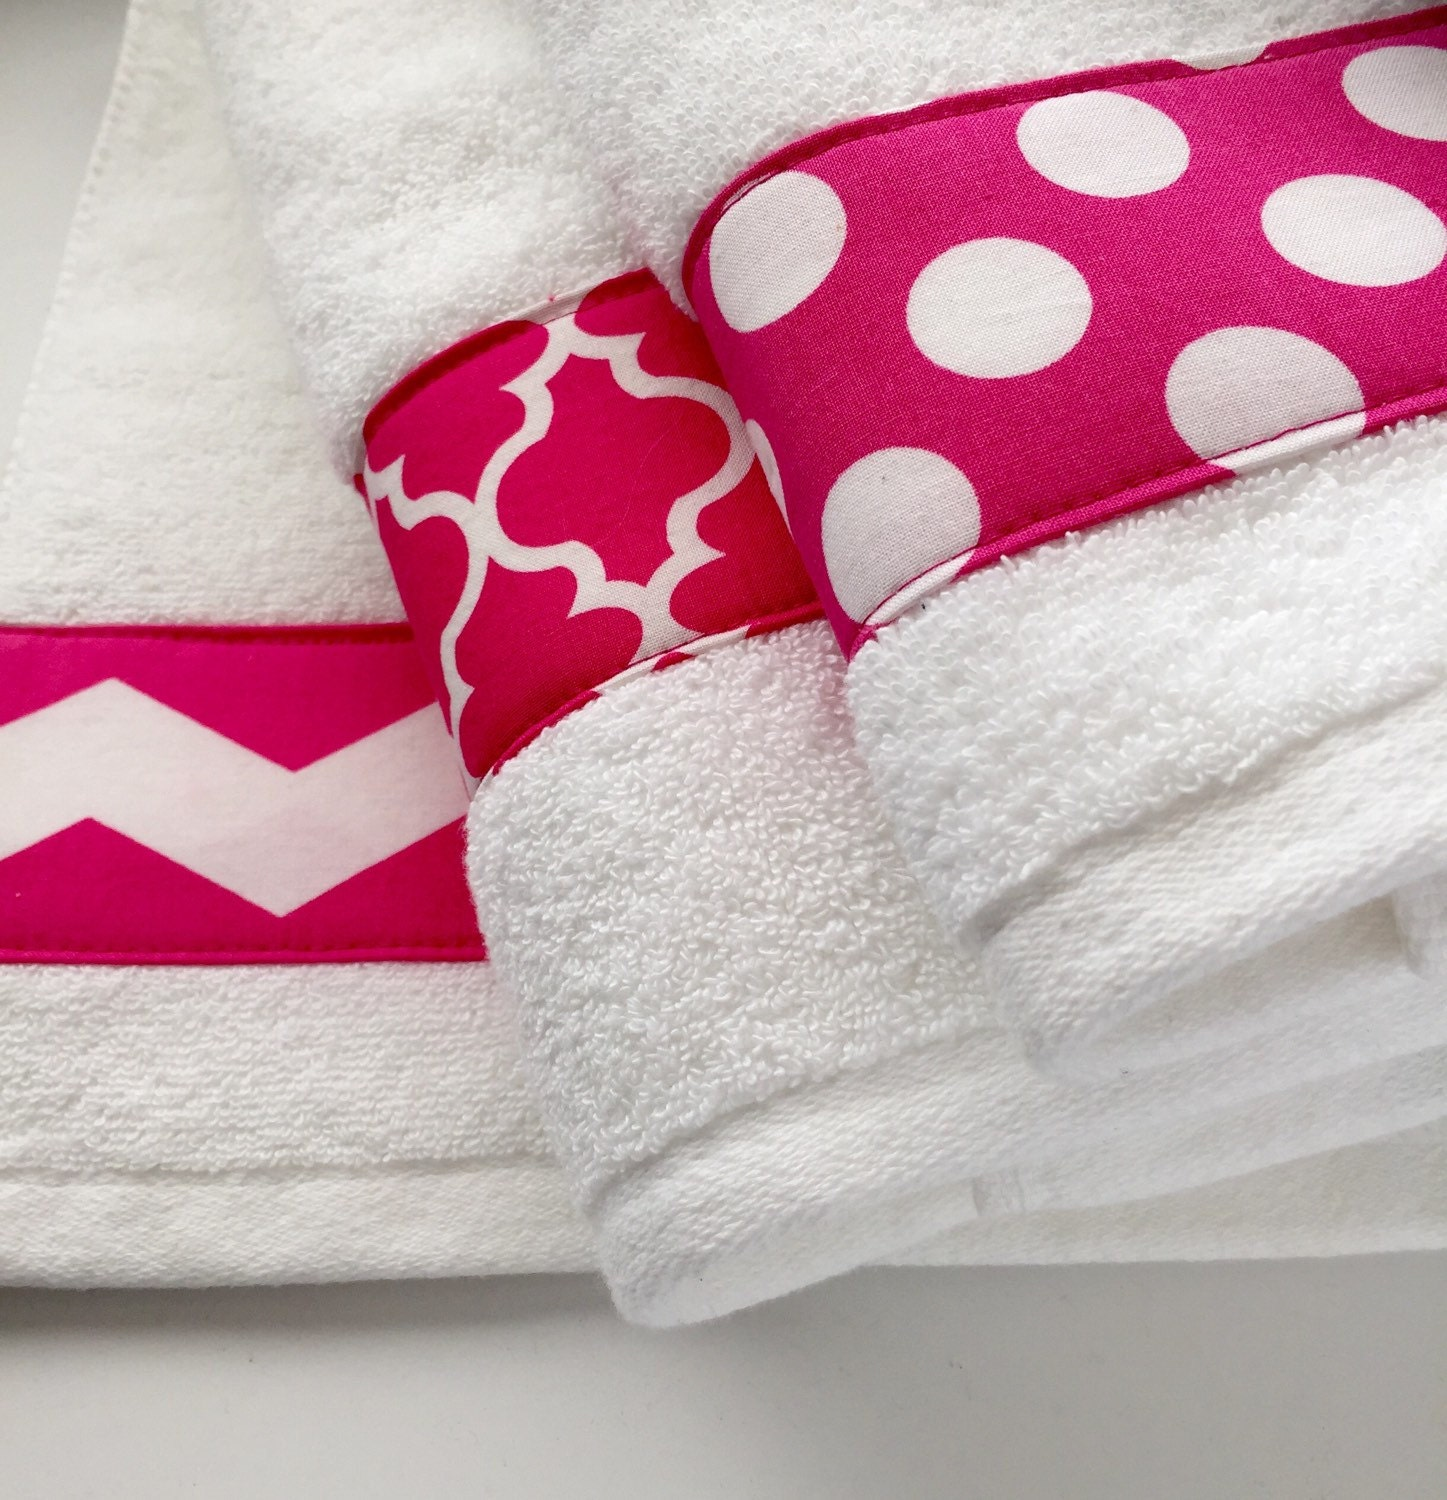 Details. August Ave Towels Give Your Bathroom ...